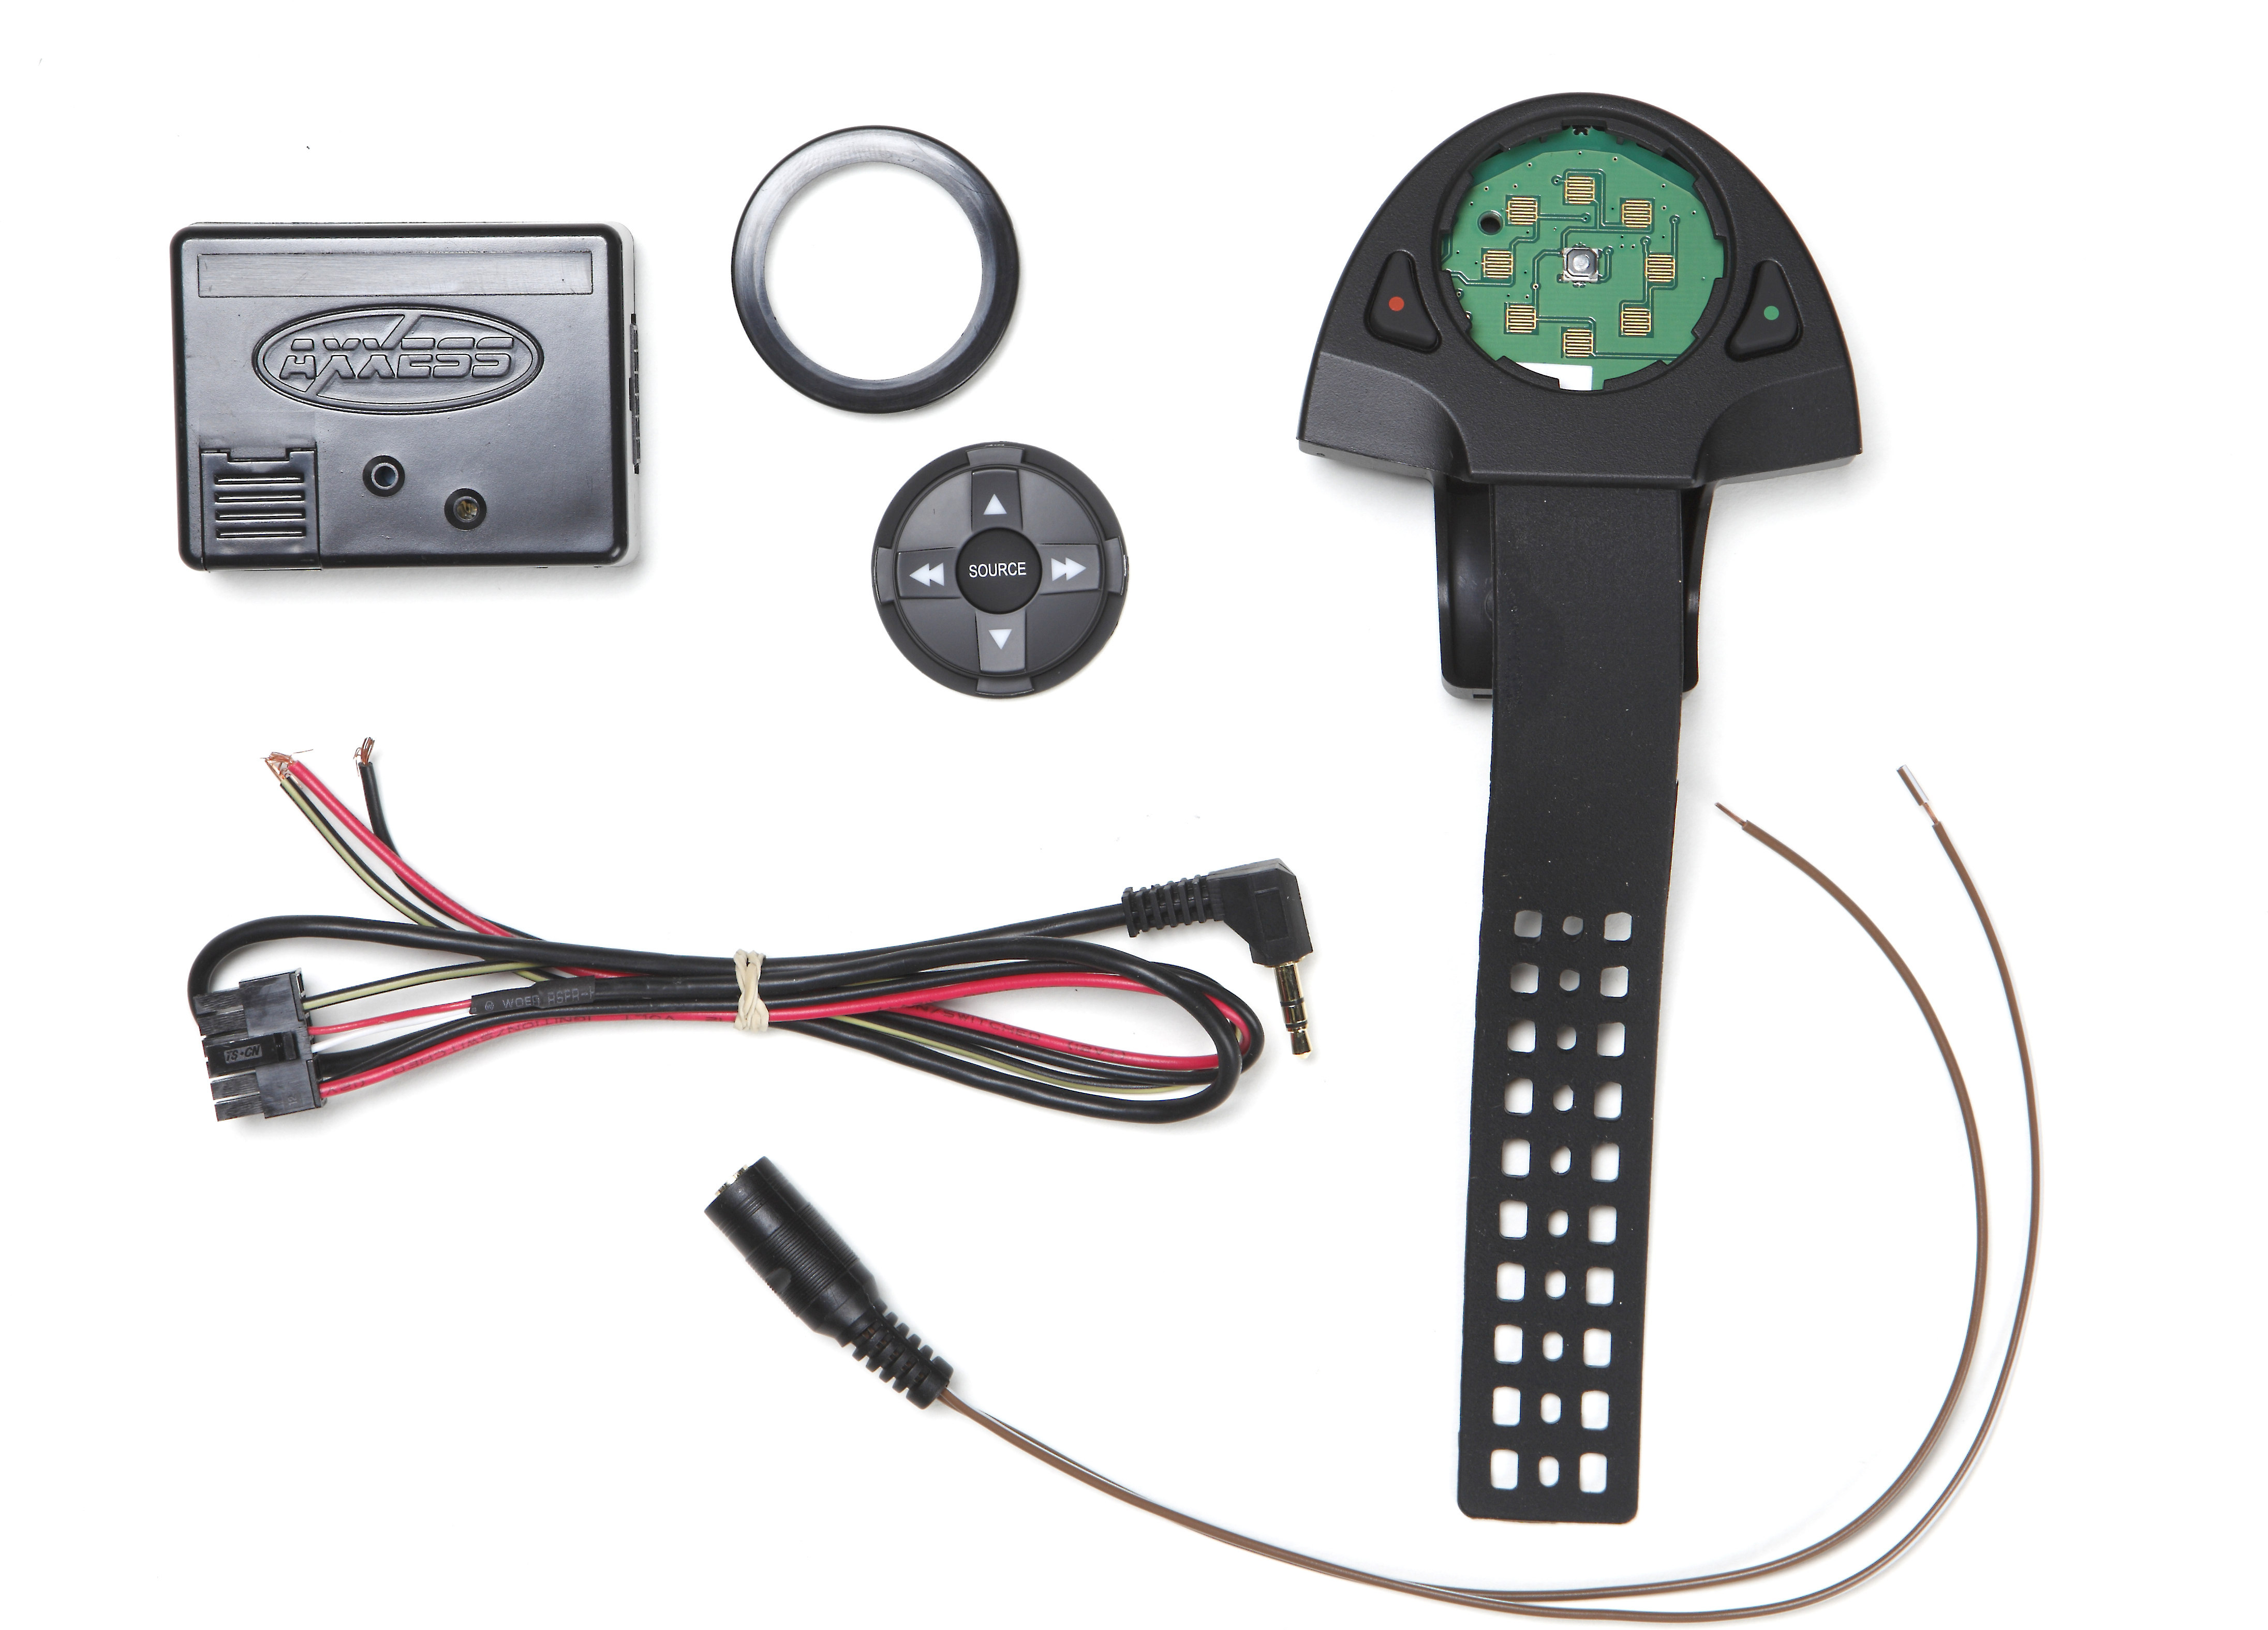 Axs Rfaswc Universal Steering Wheel Controls Package Add Audio To Your Vehicle Works With An Aftermarket Car Stereo S